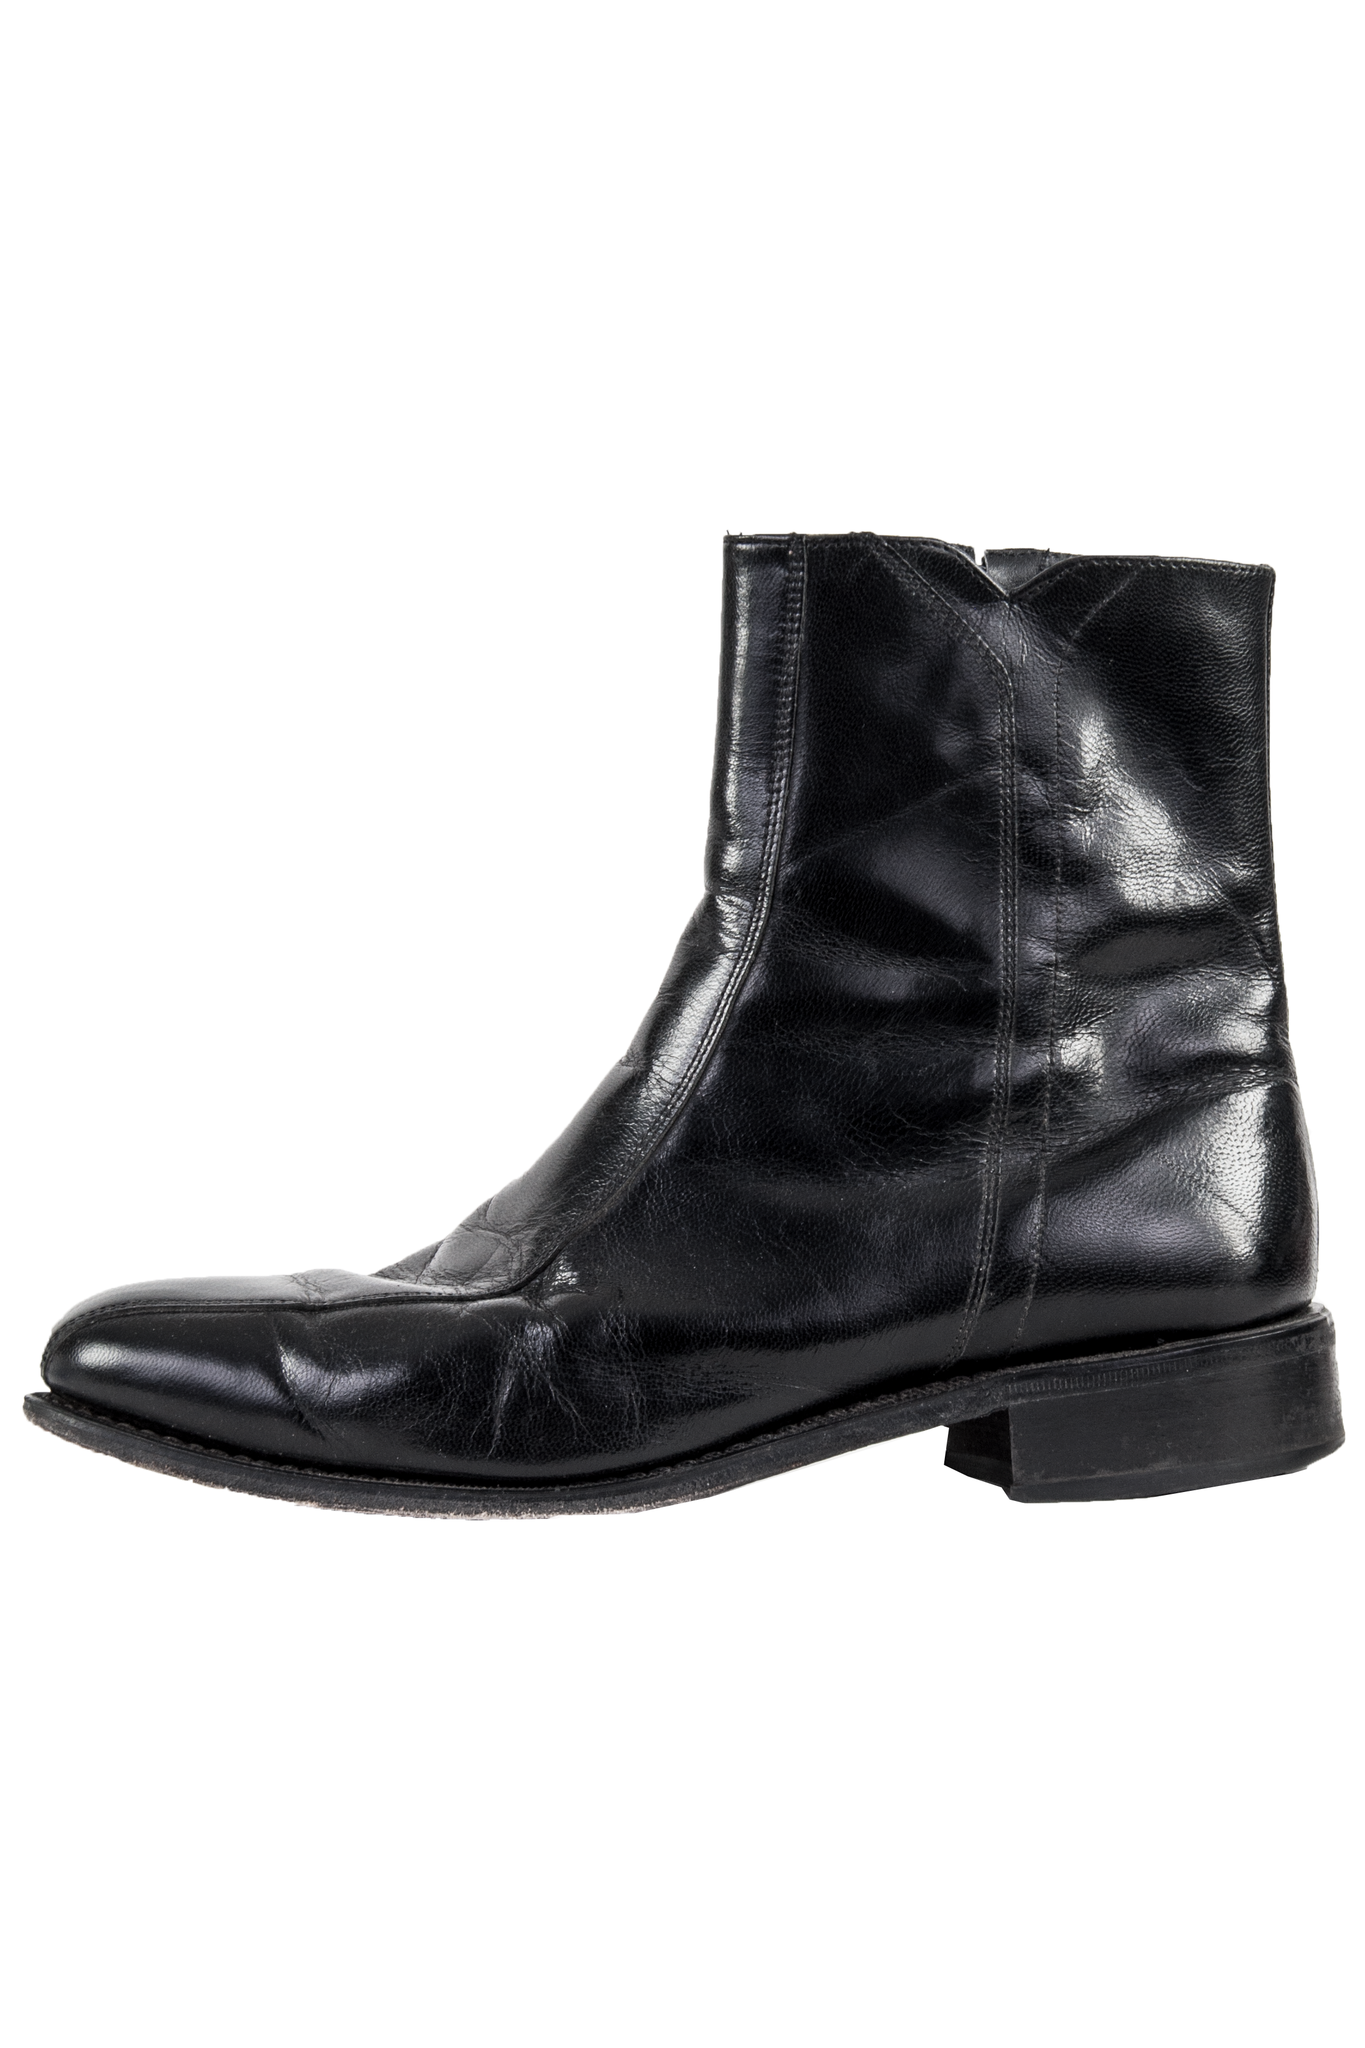 men's vintage black leather boots